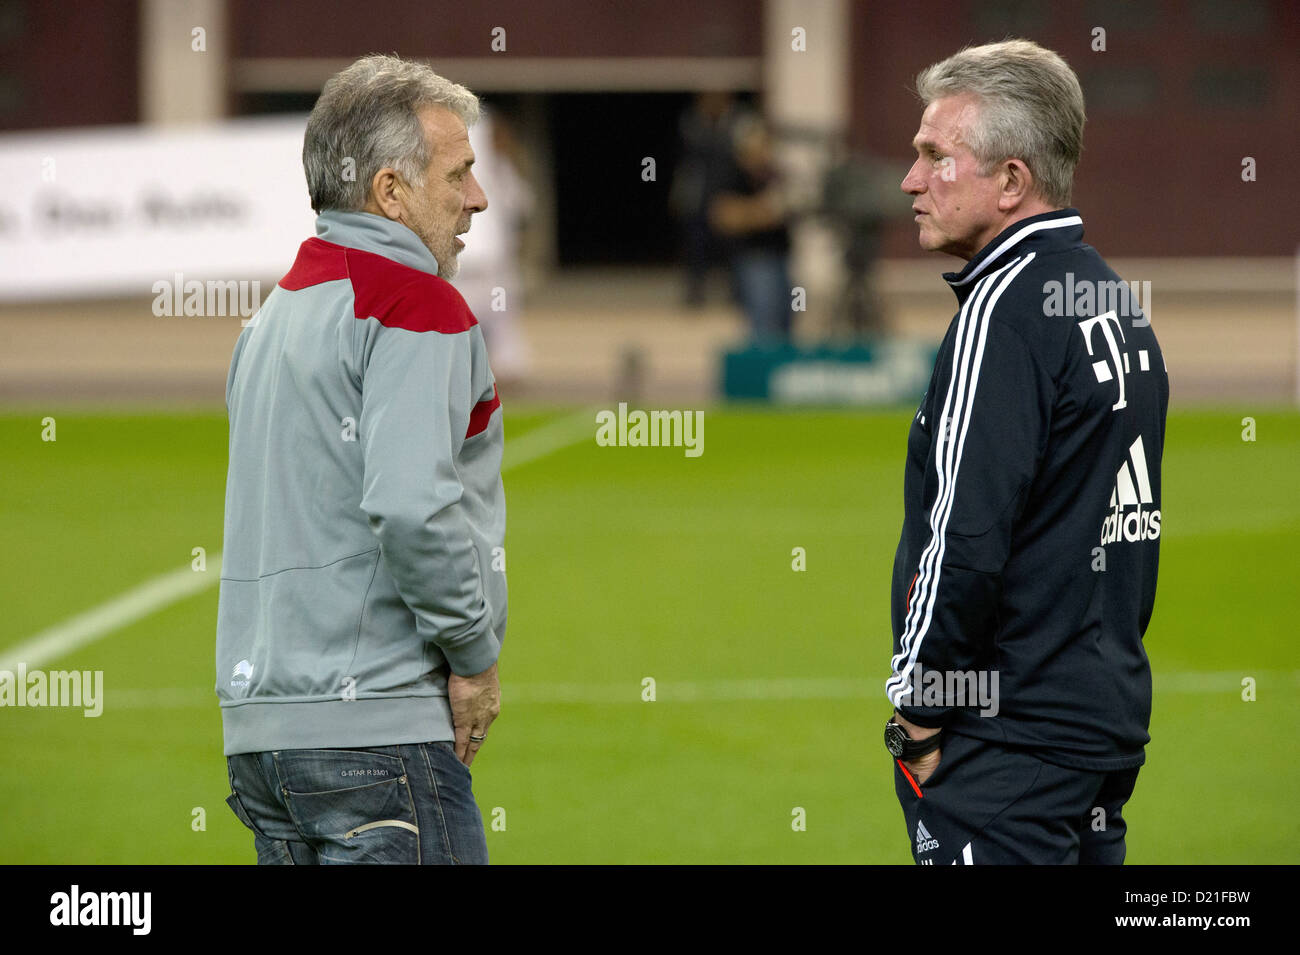 Munich's head coach Jupp Heynckes talks with Lekhwiya Sports Club's head coach Eric Gerets during a test - Stock Image